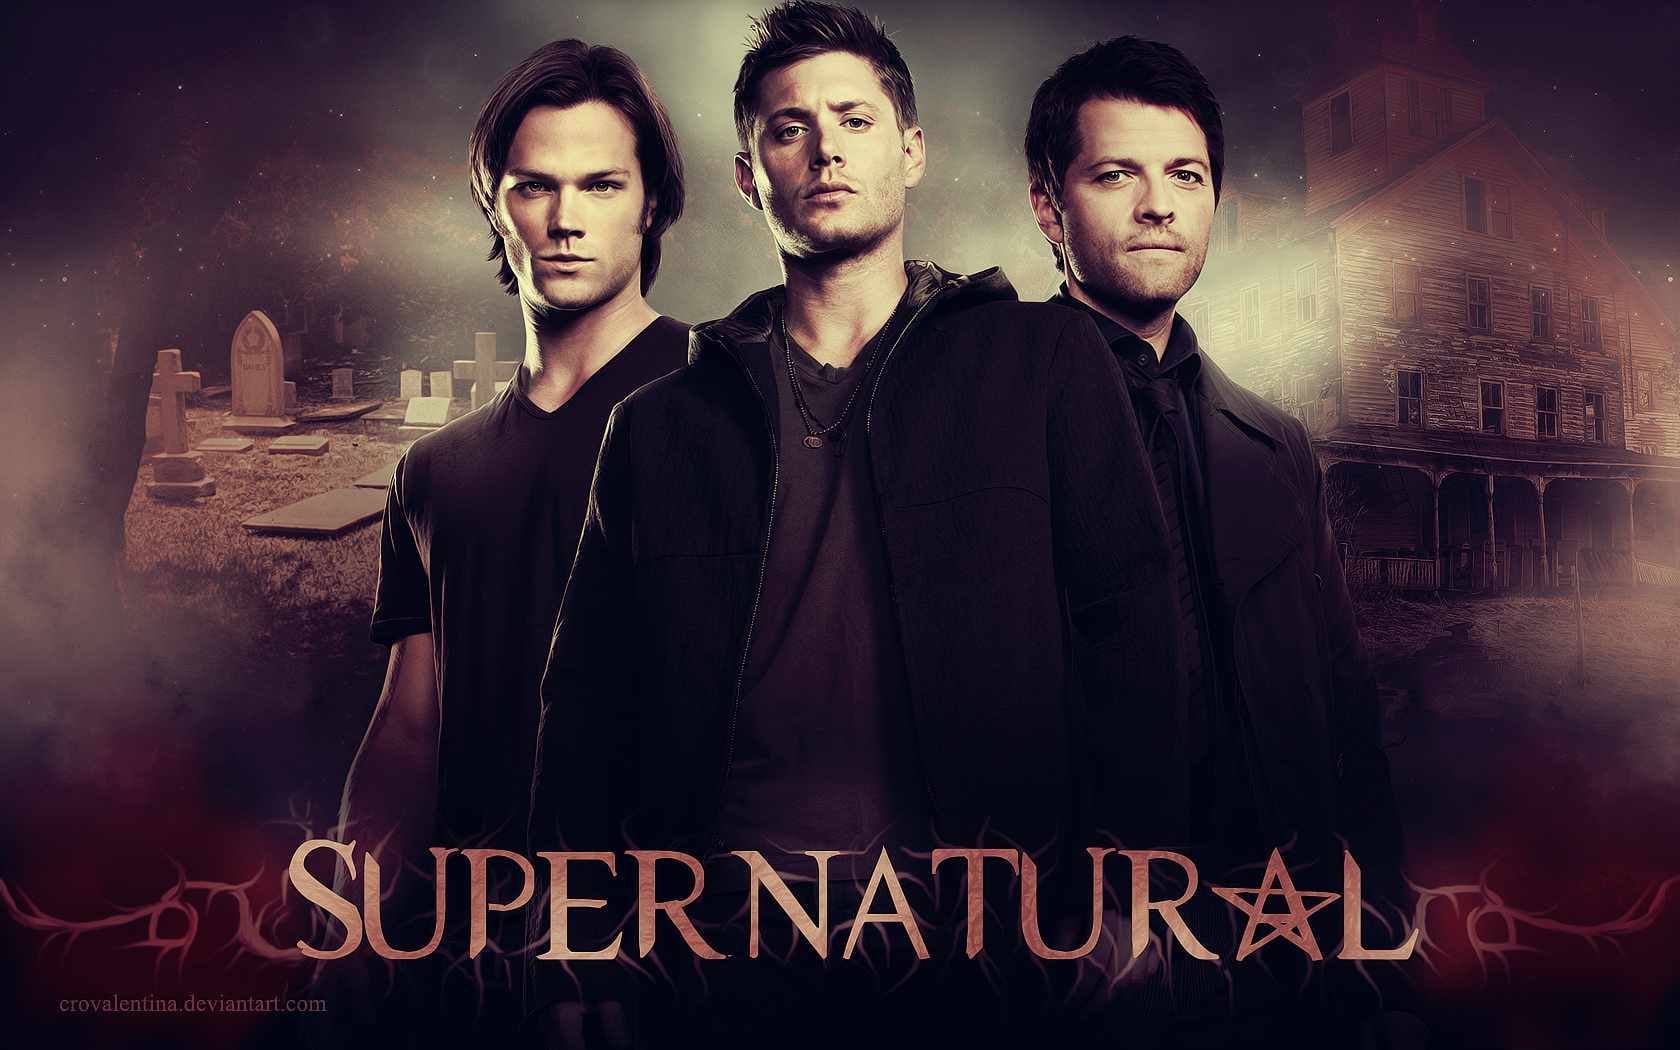 Would There Be Supernatural Season 15, Who are The Cast Members and